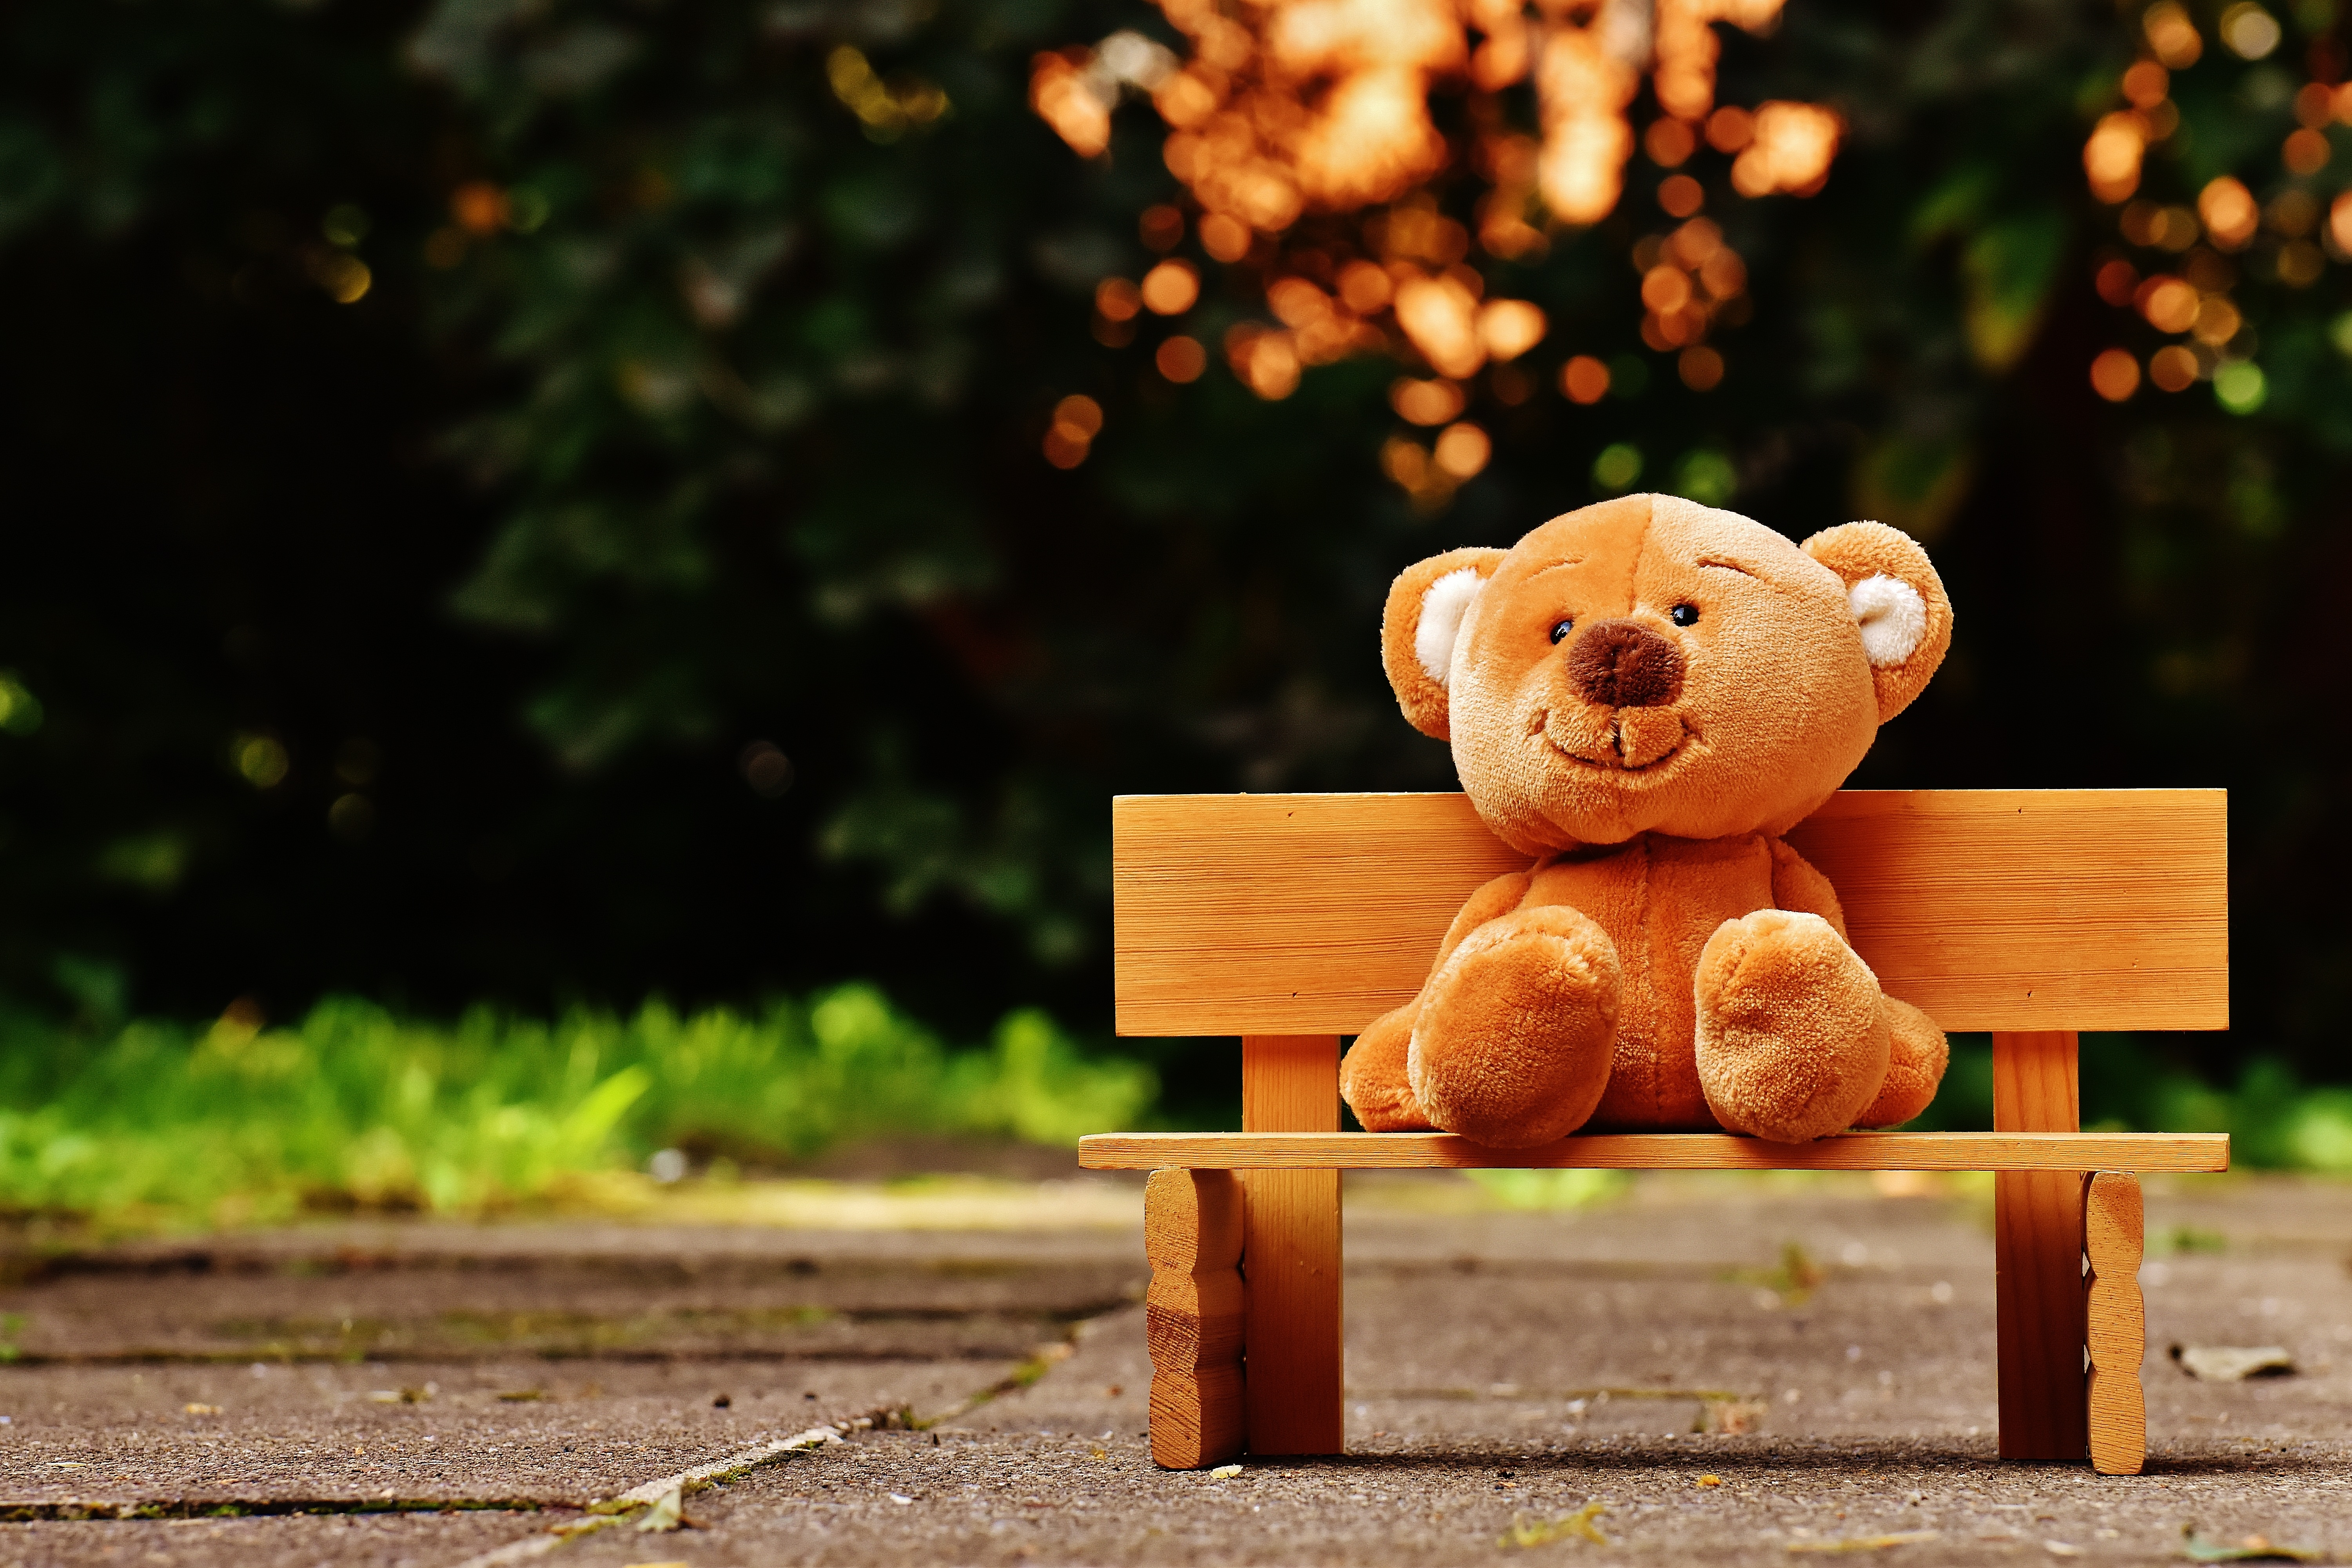 Download Cute Couple Wallpaper With Quotes Brown Teddy Bear On Brown Wooden Bench Outside 183 Free